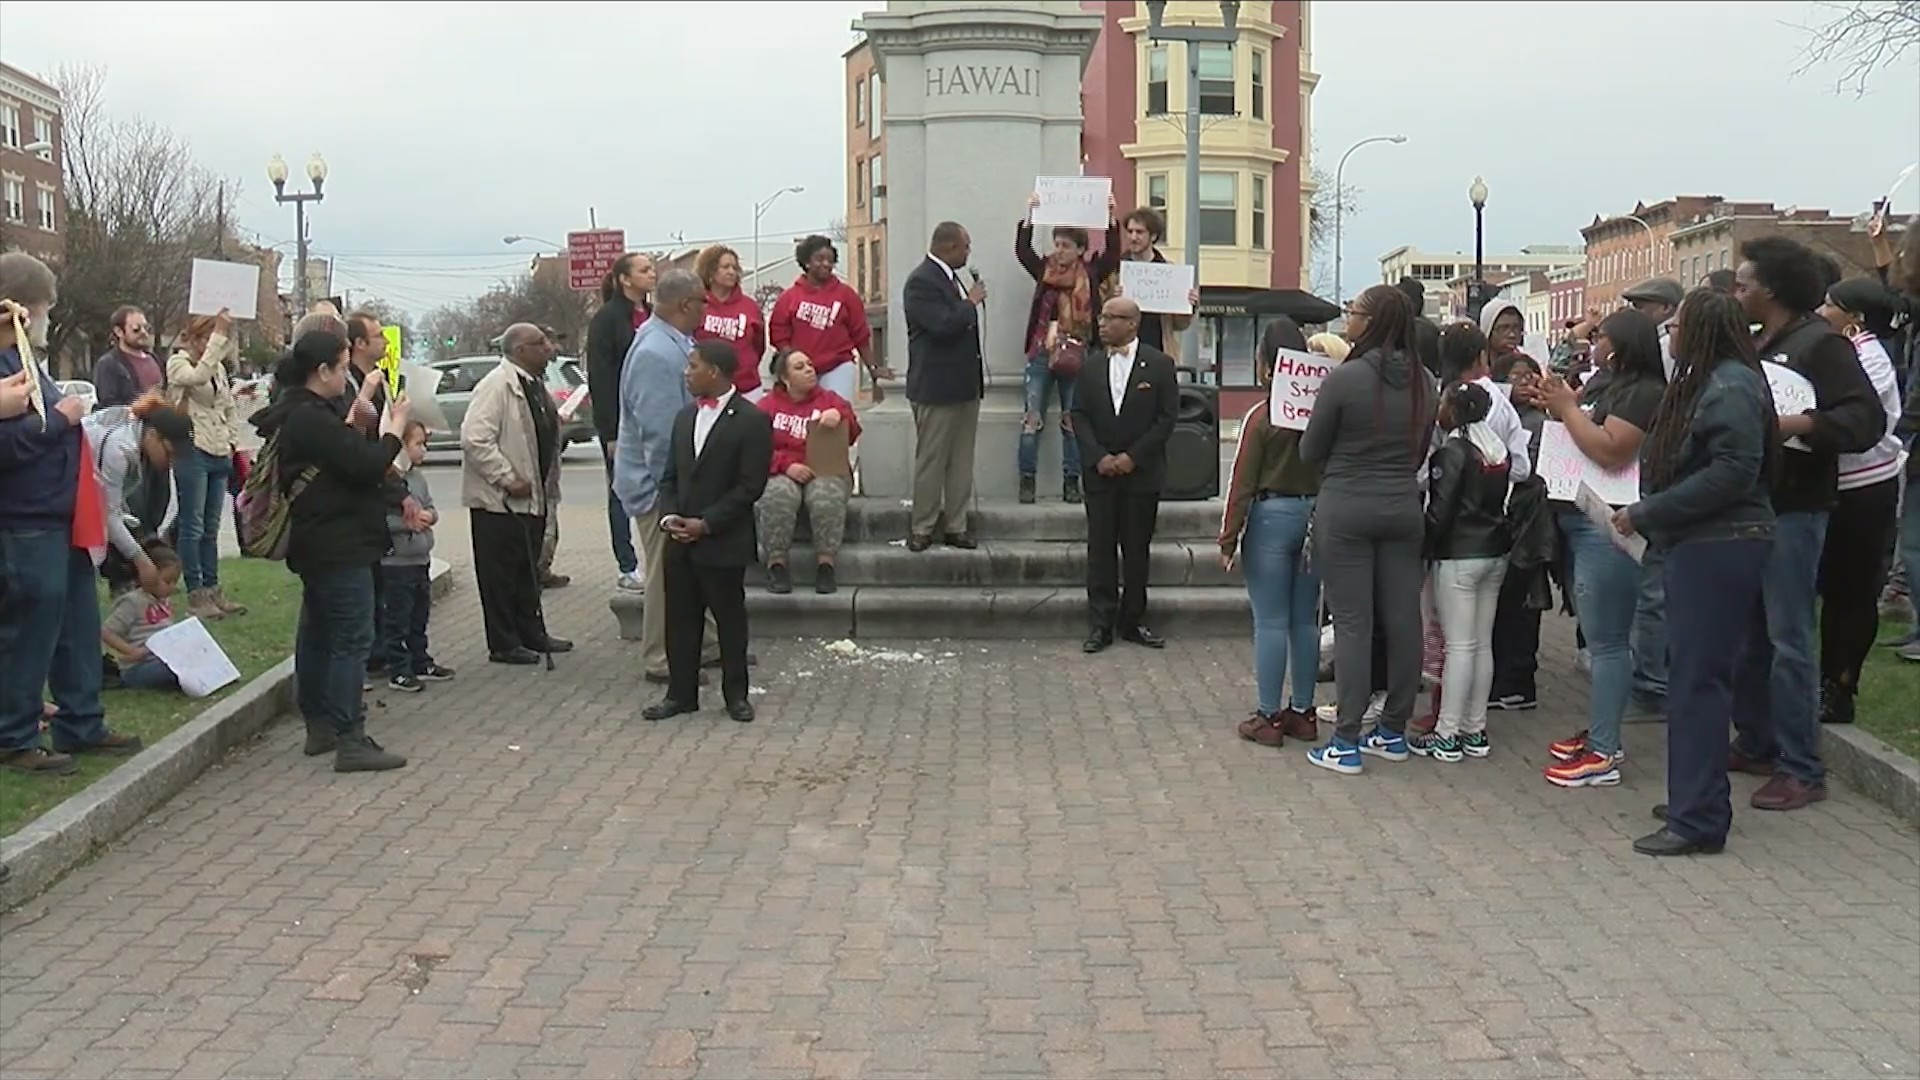 Albany residents gather to rally against police brutality